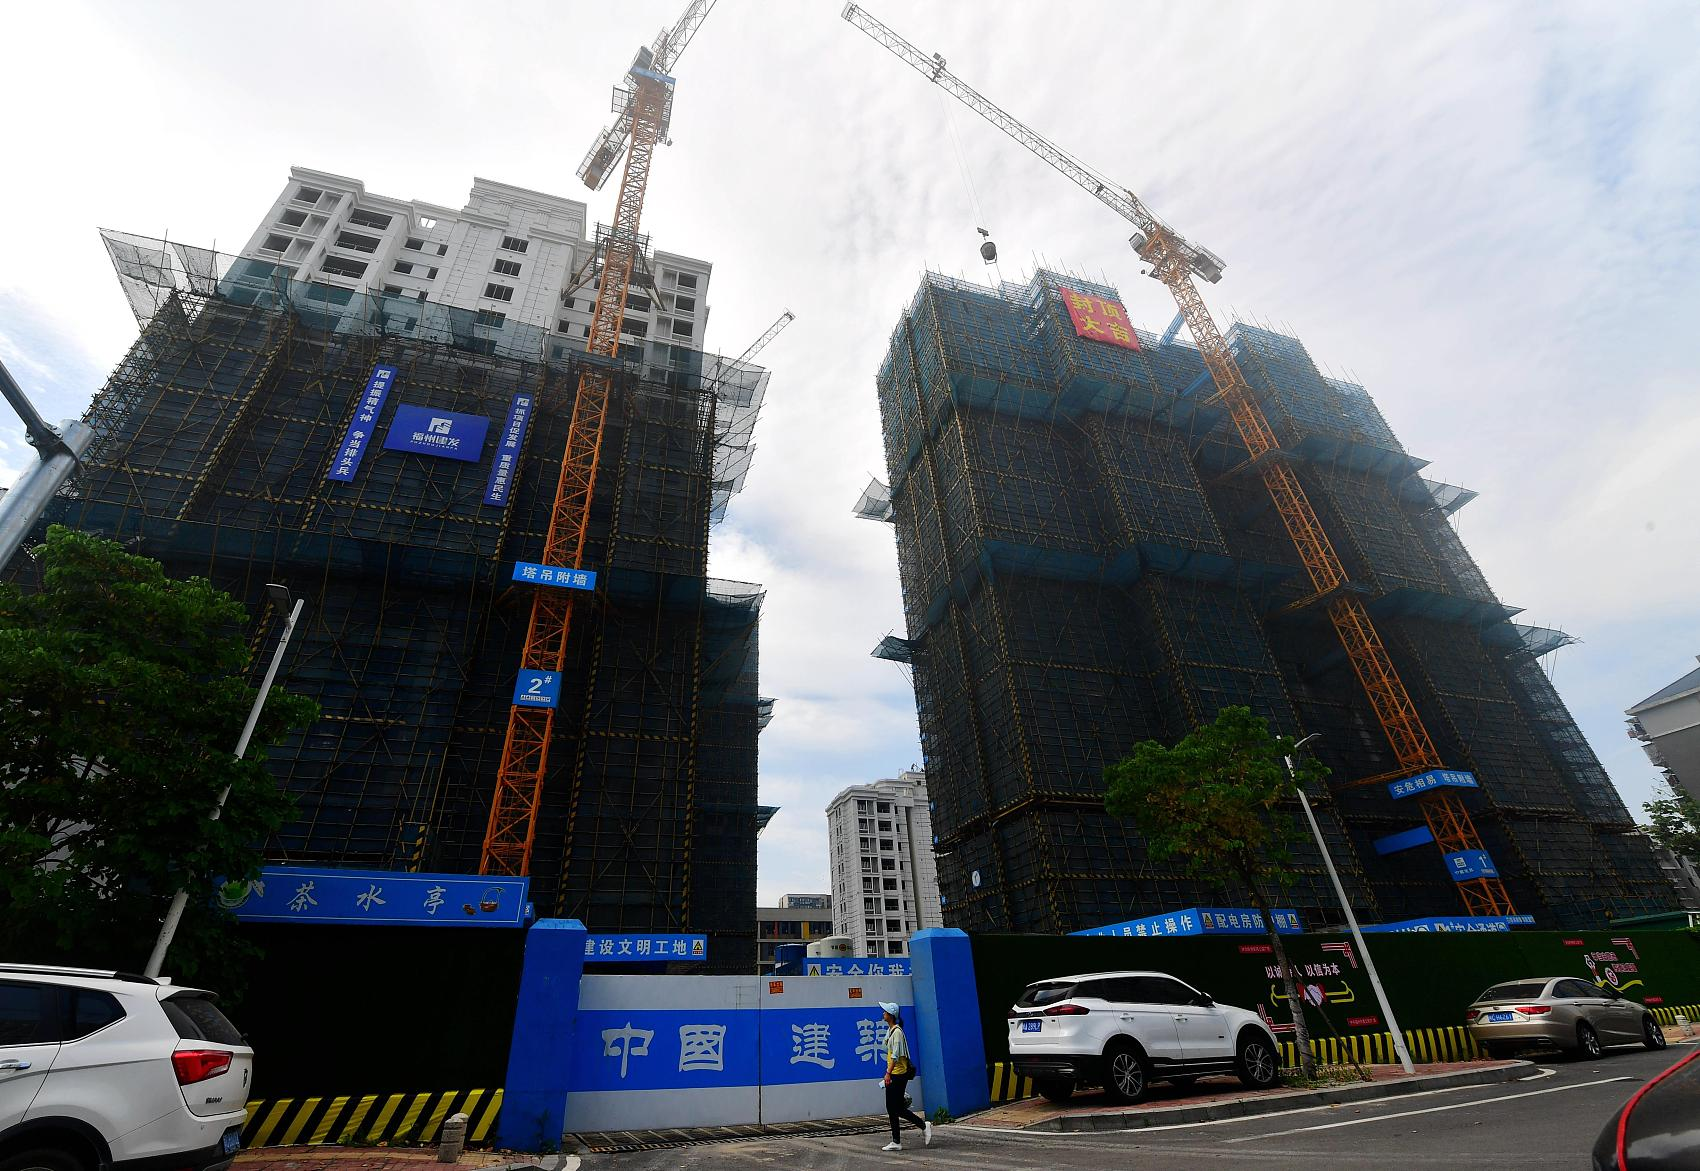 China's fixed-asset investment down 6.3 pct in Jan.-May